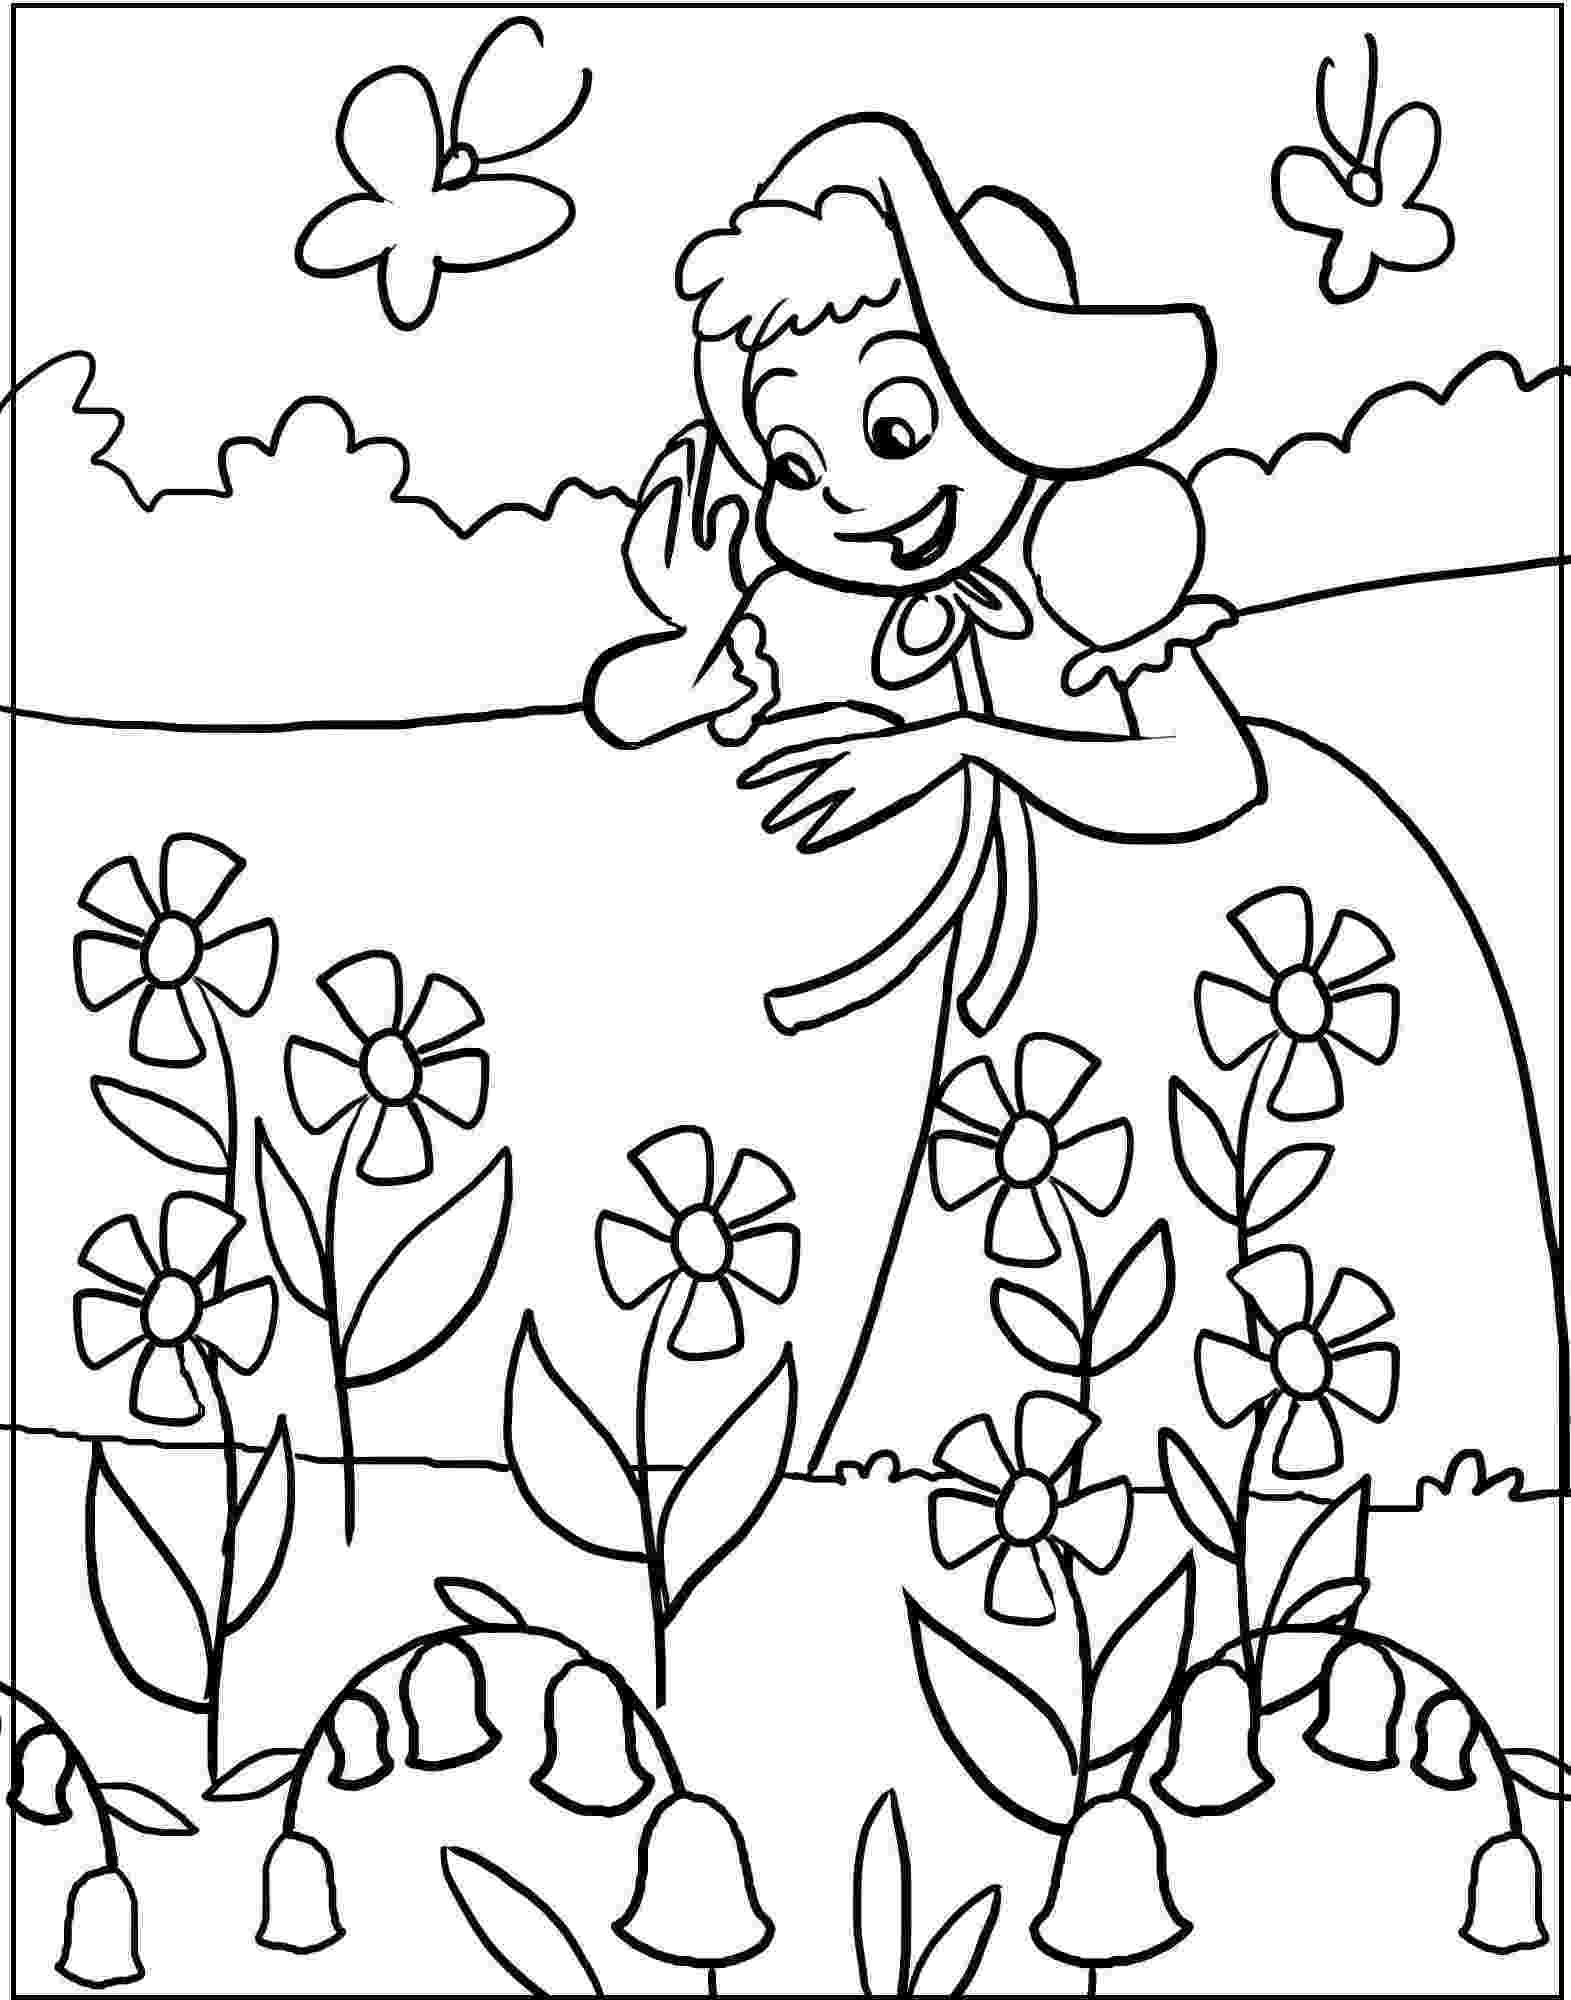 spring flowers coloring pages to print spring flower coloring pages to download and print for free pages spring coloring print flowers to